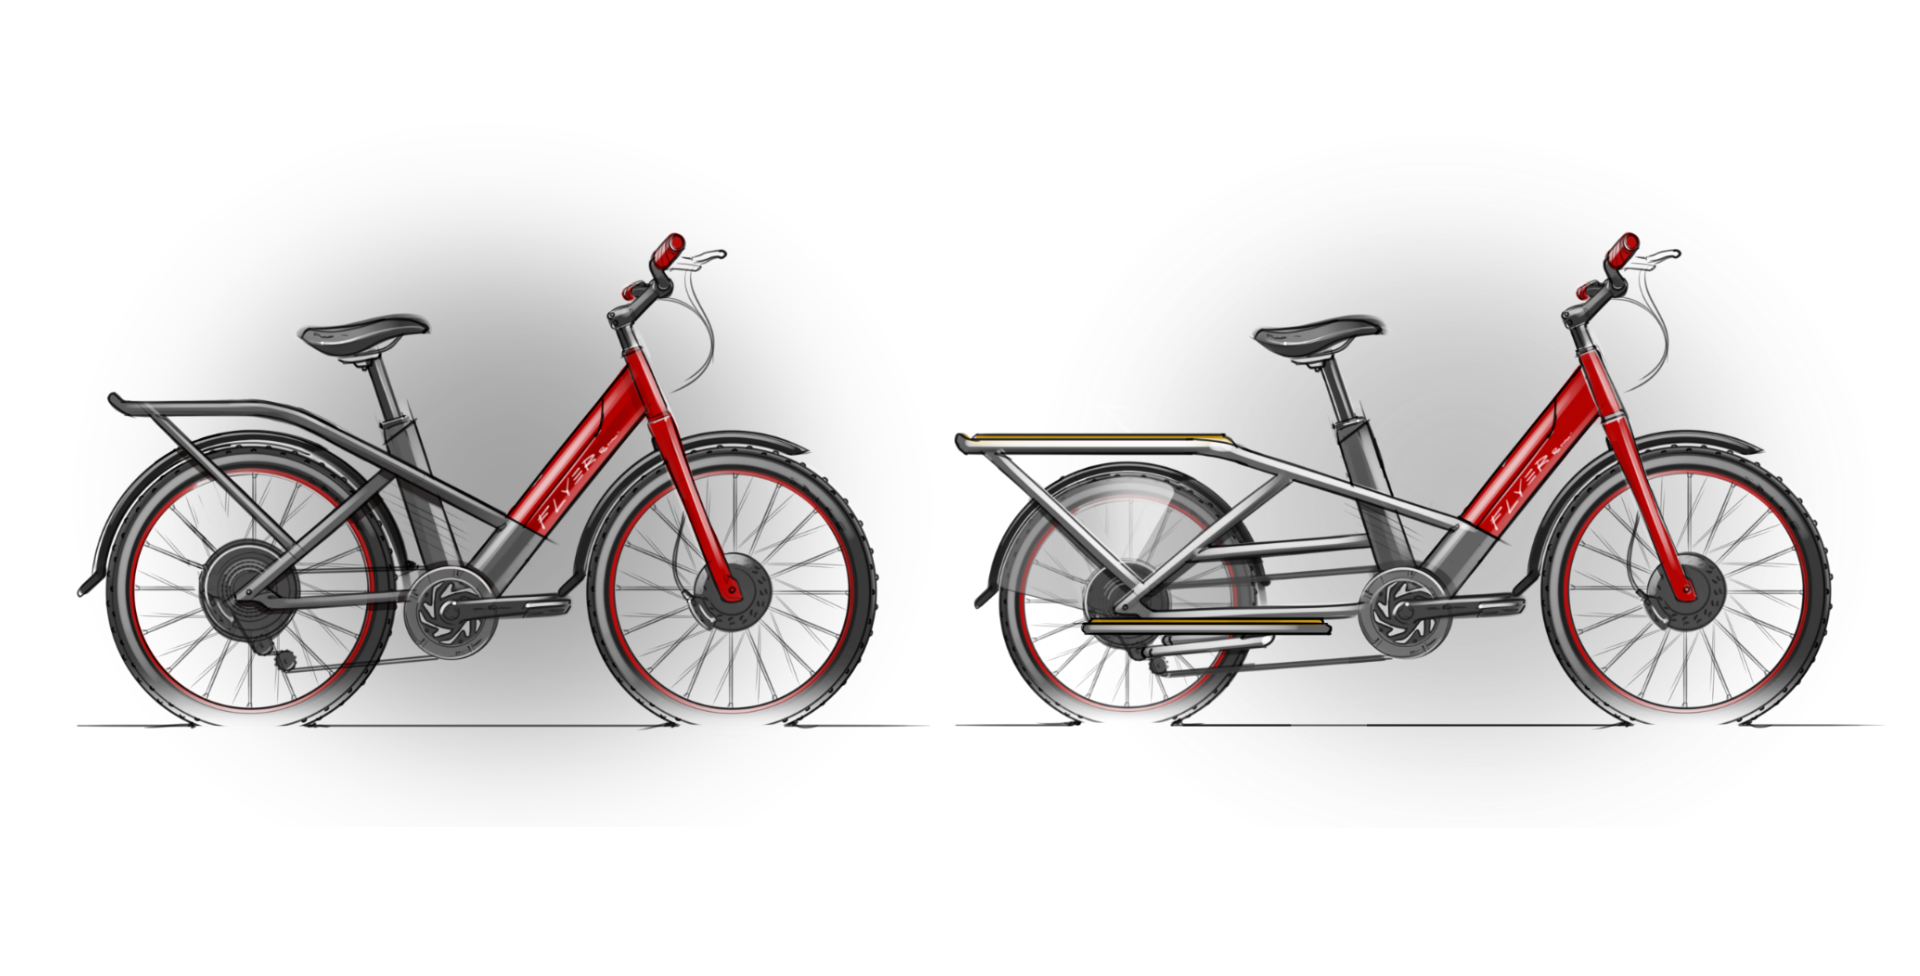 Sketches of two red electric bikes